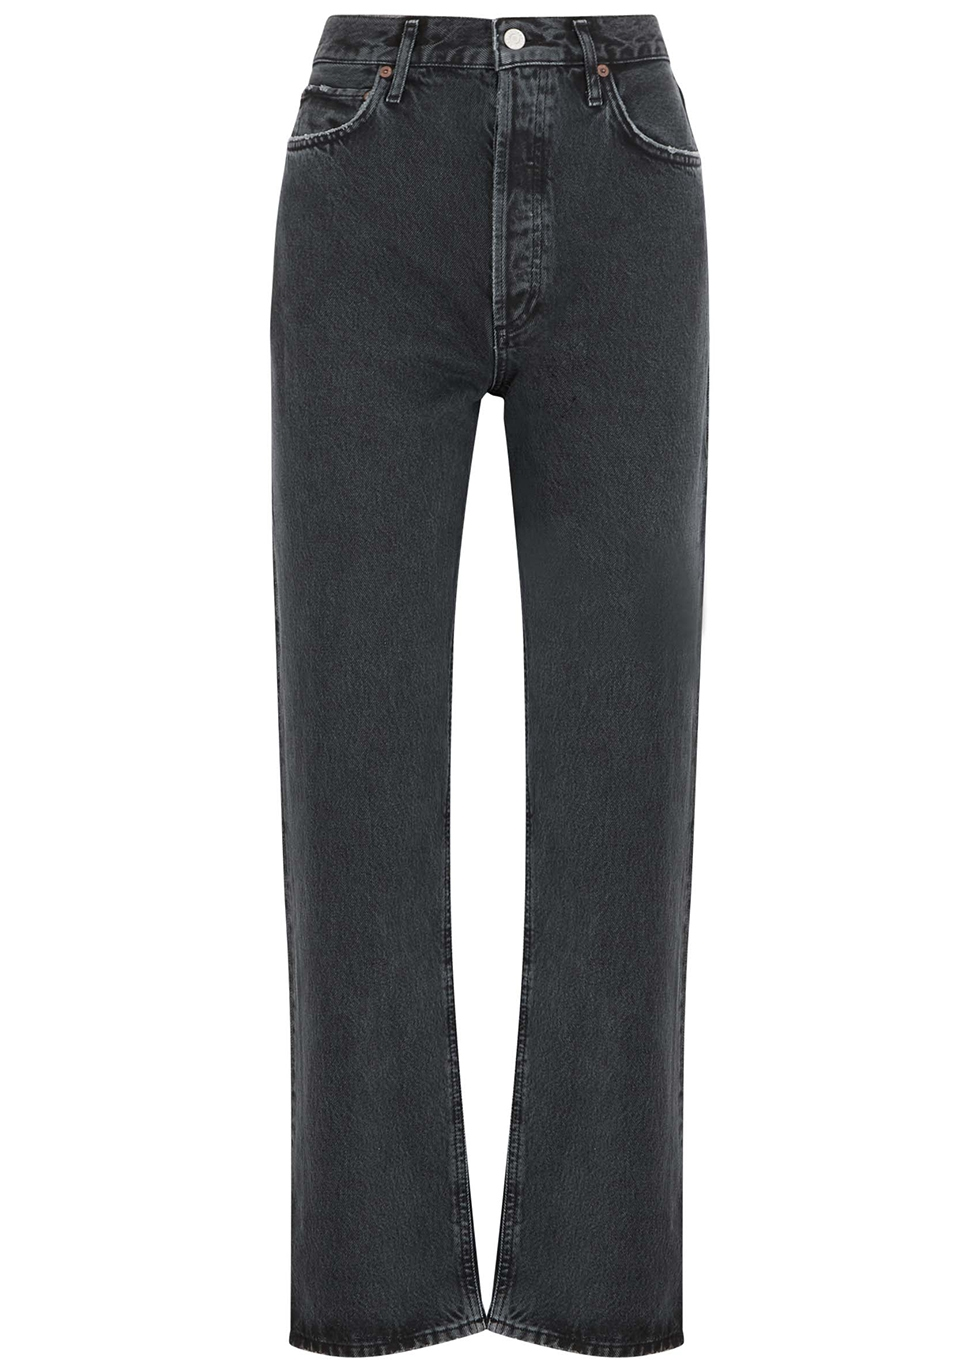 90's charcoal straight-leg jeans